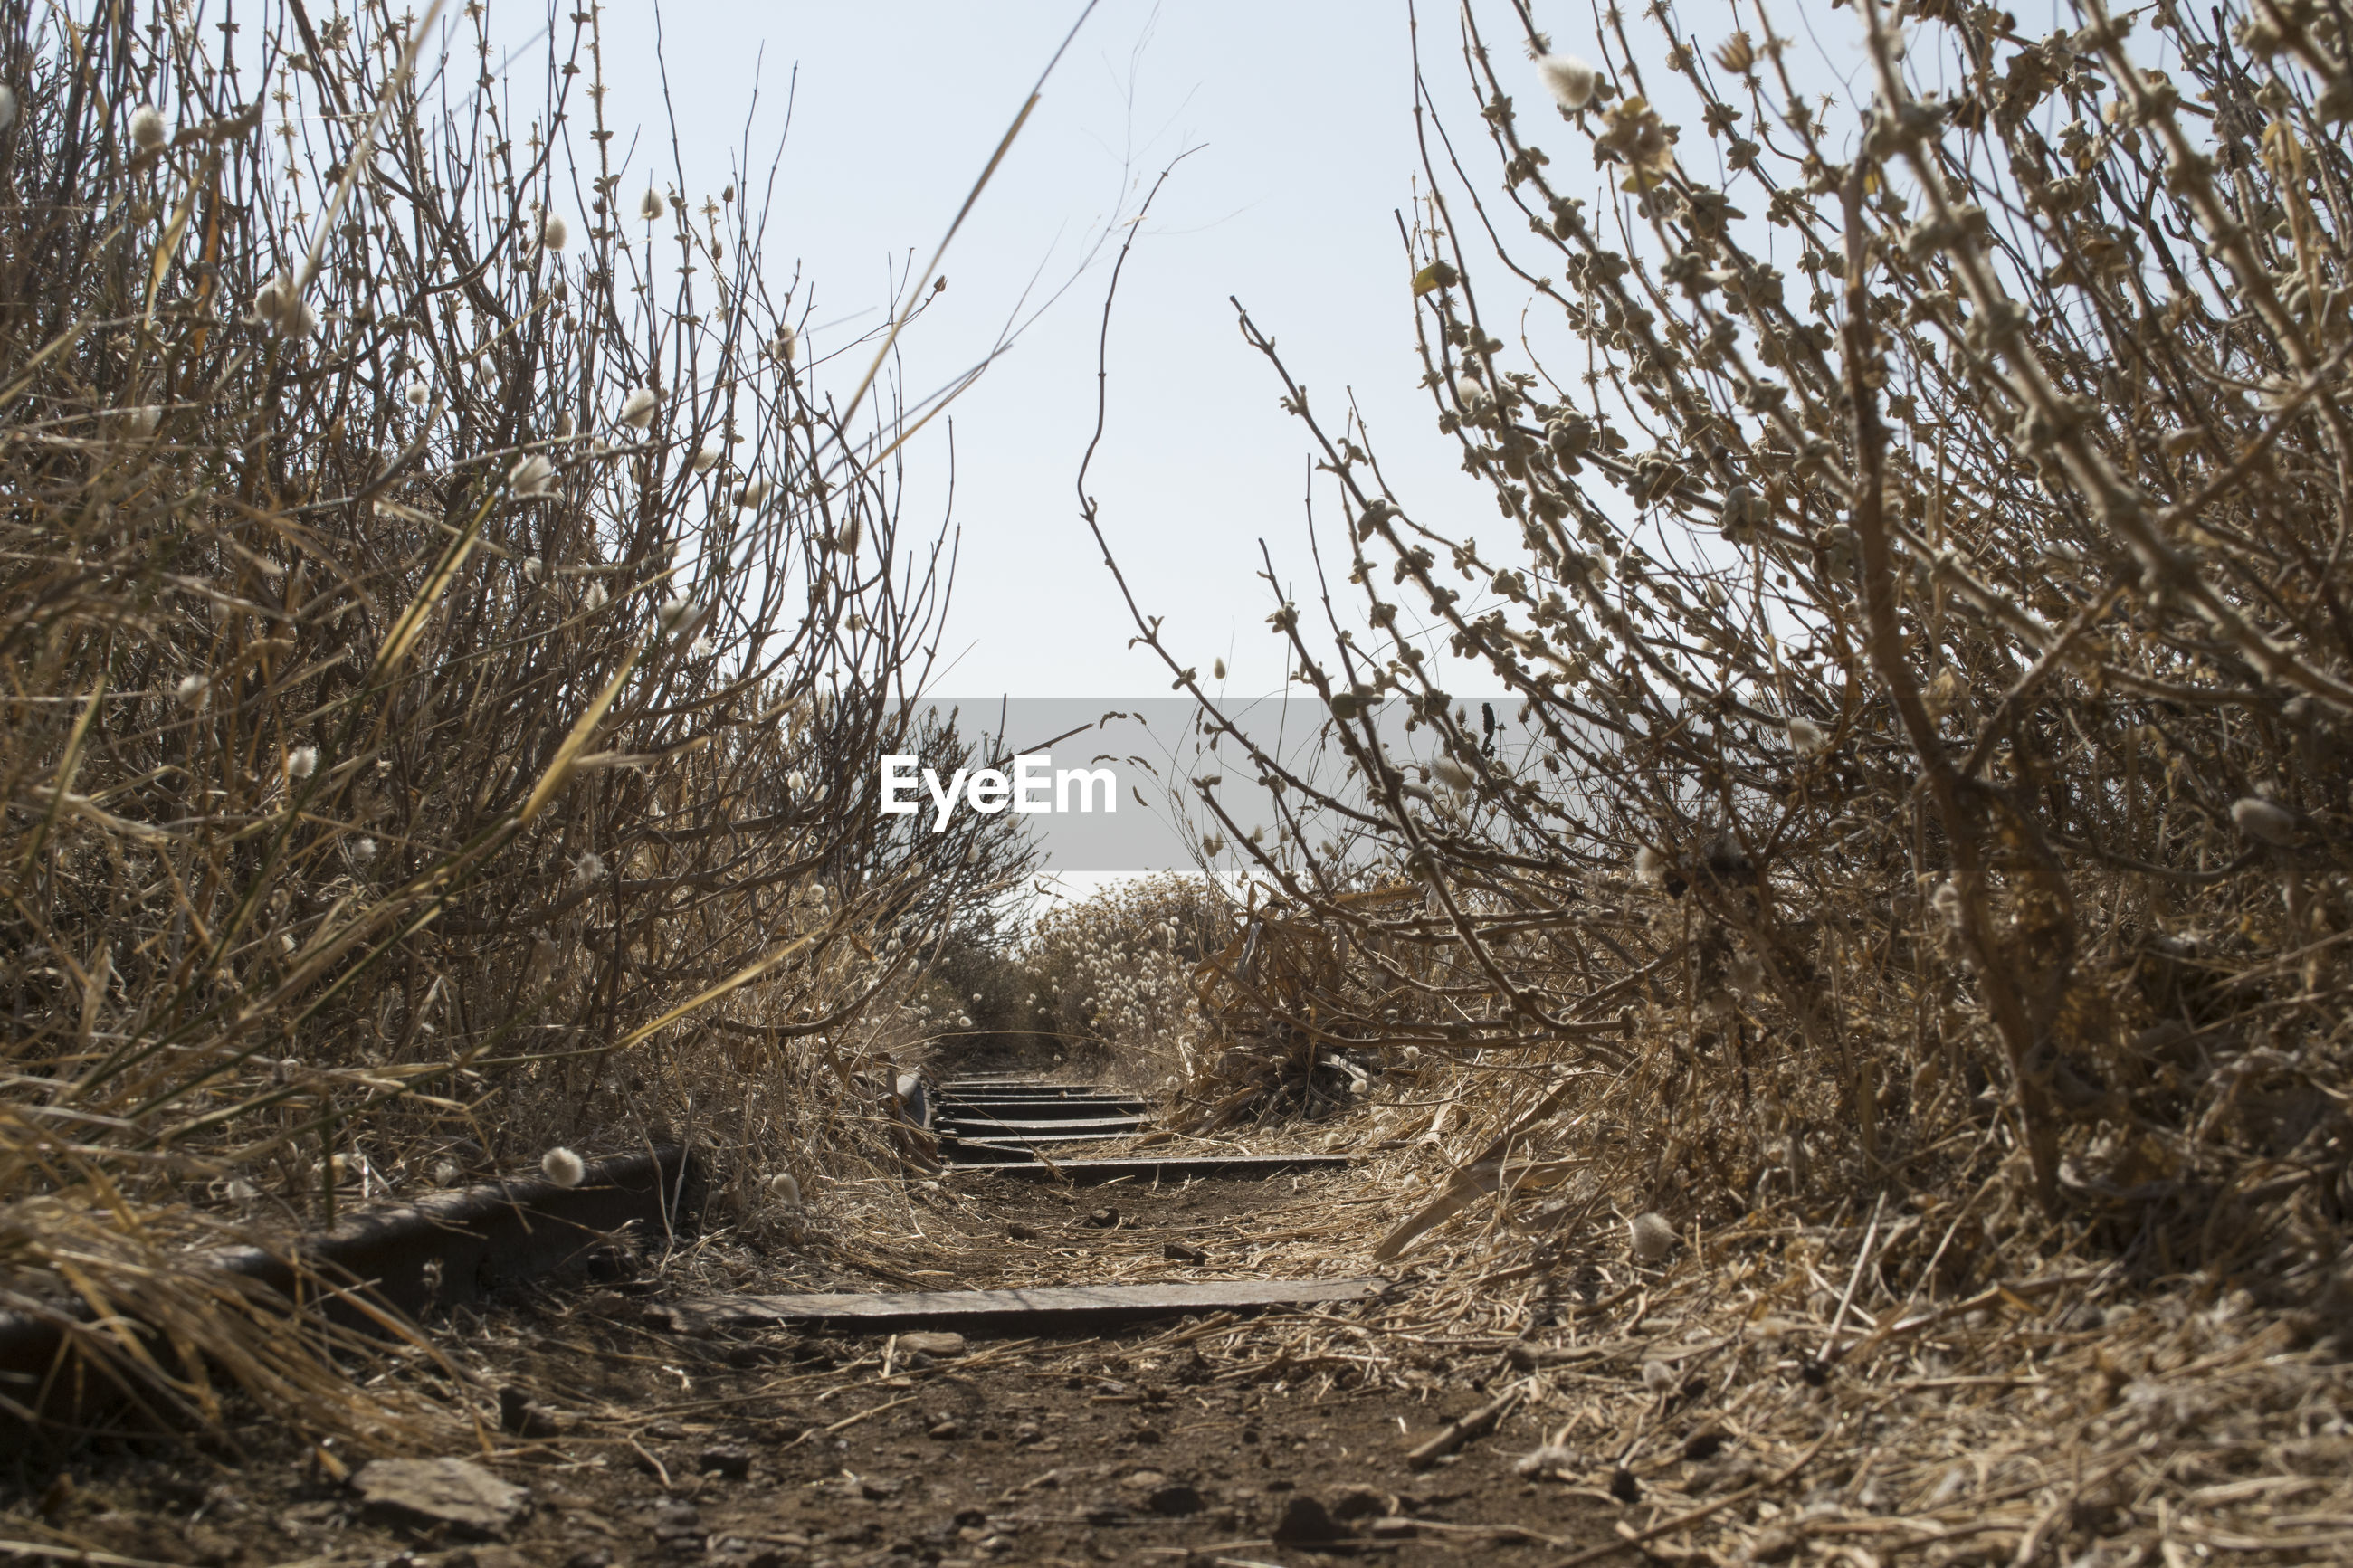 Abandoned railroad track amidst dead plants